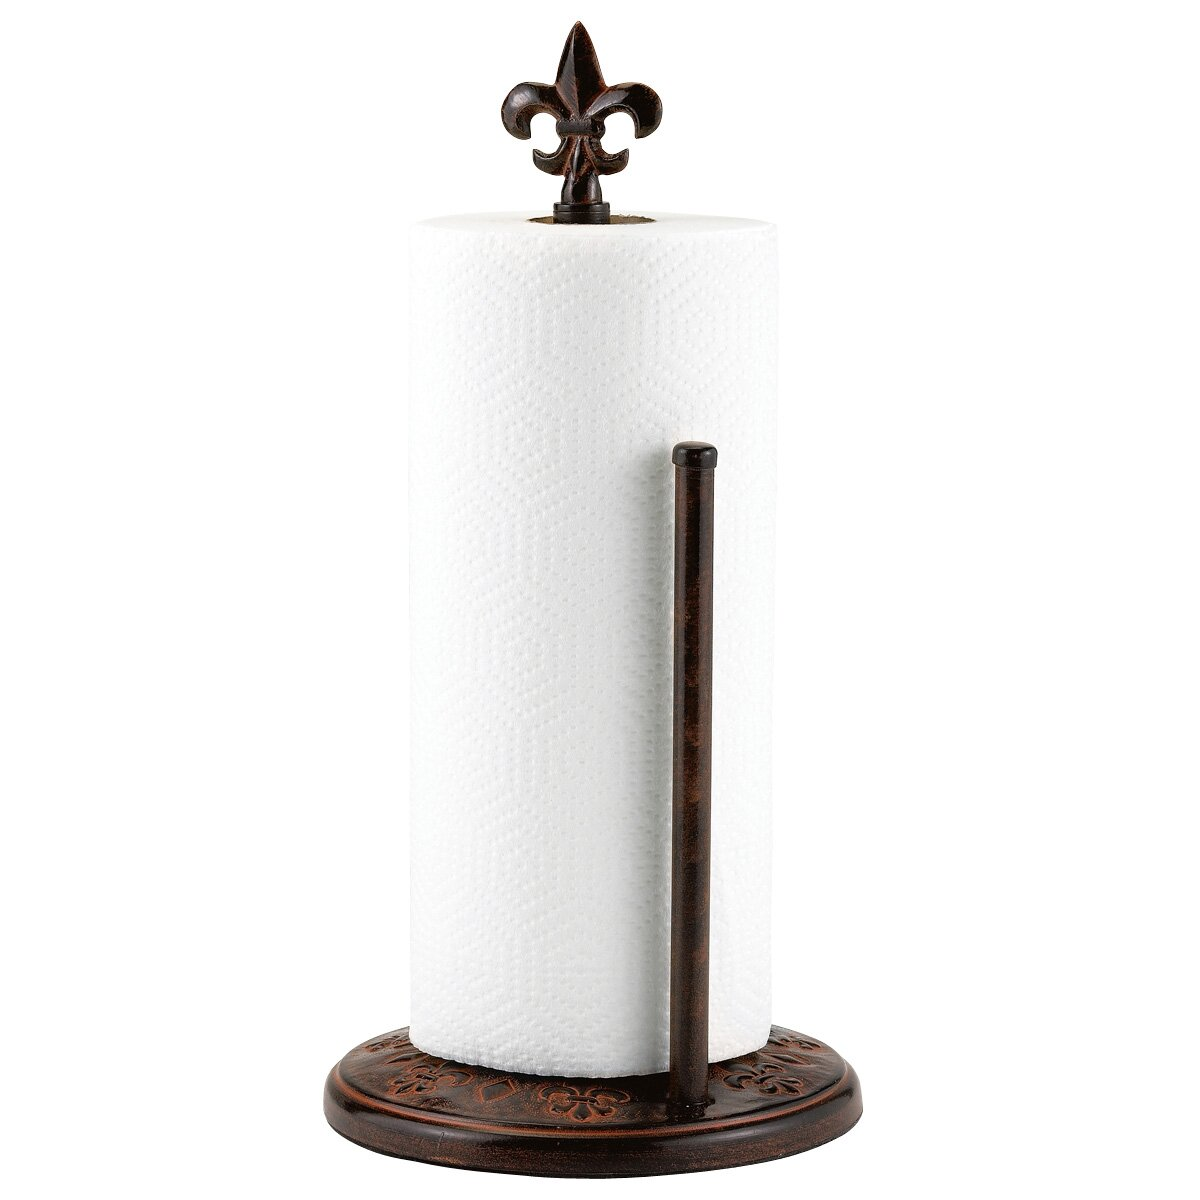 Old Dutch Versailles Standing Paper Towel Holder Reviews